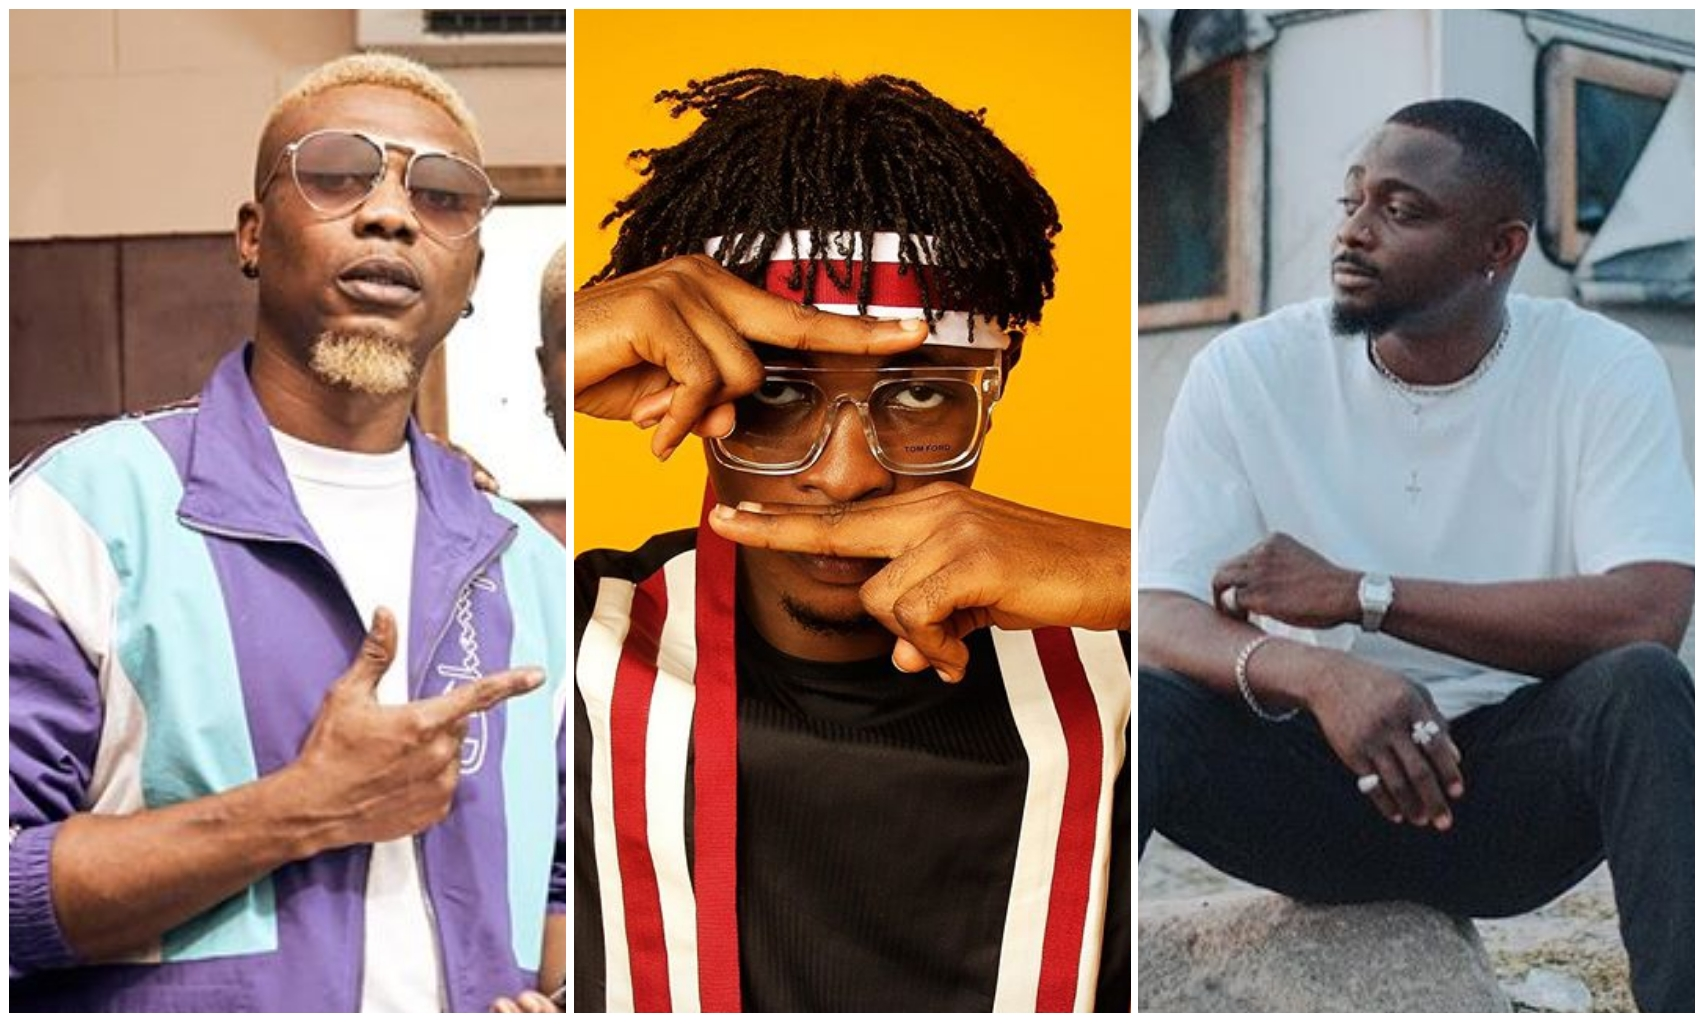 #BBNaija: Reminisce, Oxlade and Sean Tizzle shows support for Laycon (Photos)